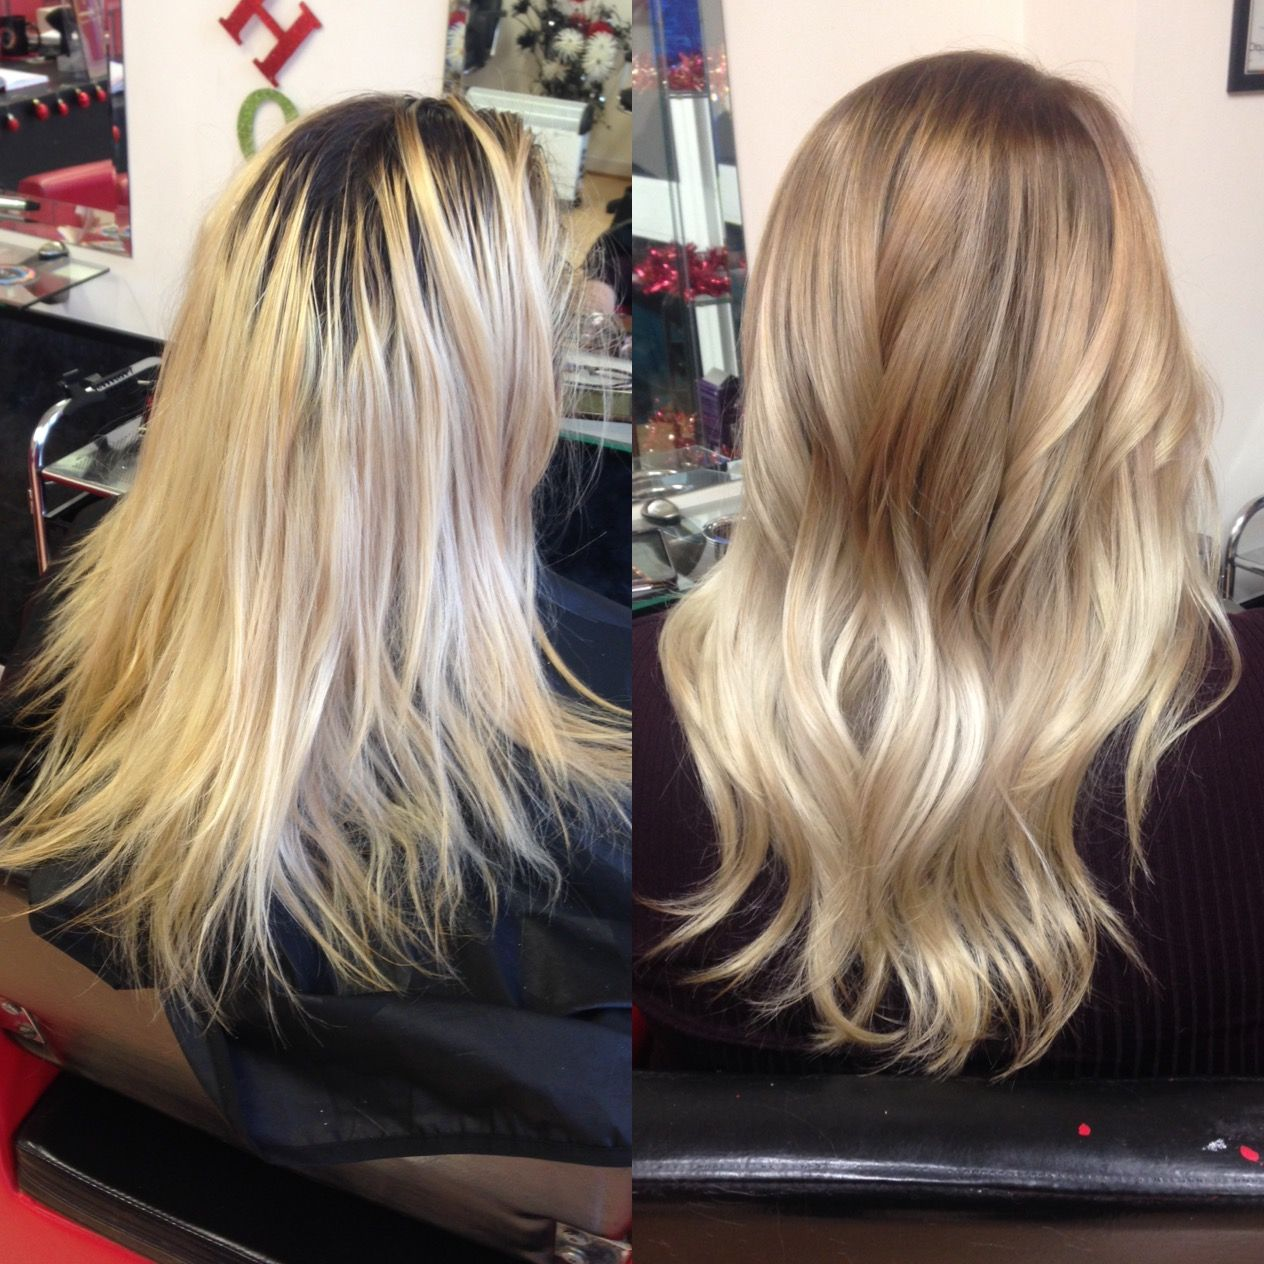 Incredible Before And After Of This Hair Transformation From Grown Out Highlights With Dark Roots To